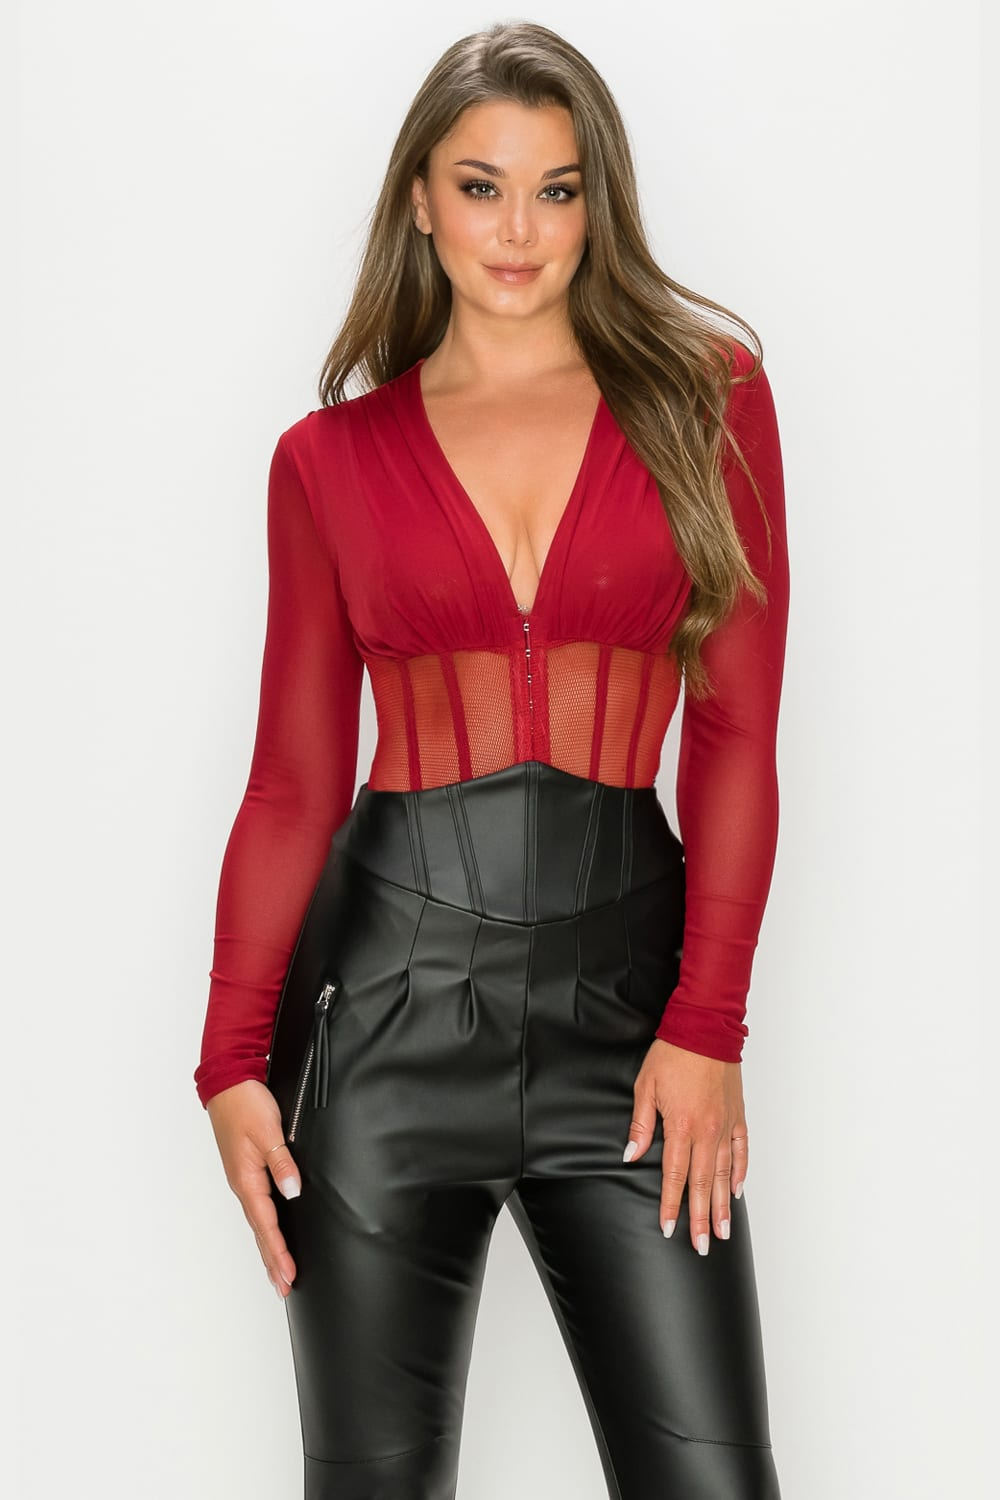 PREORDER - BURGUNDY FISHNET SHEER MESH BACK DEEP V NECK BODYSUIT ETA: 10/16